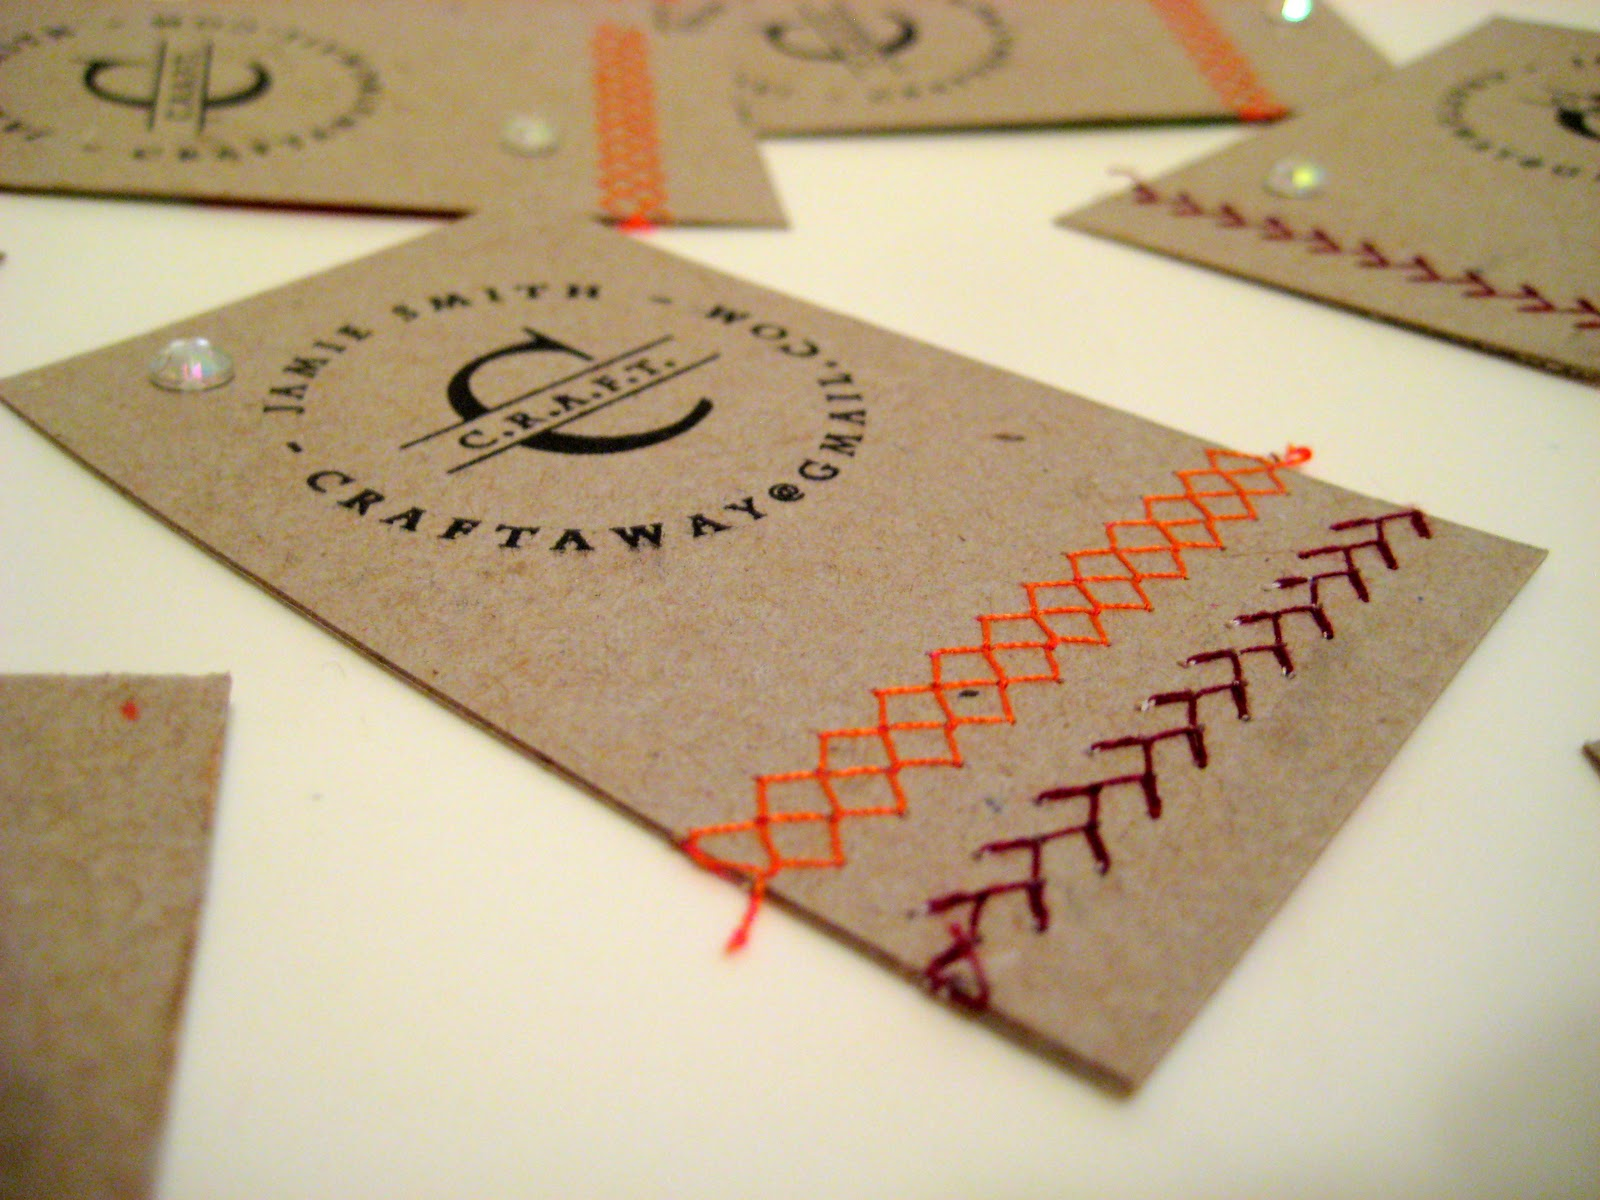 Craft business cards akbaeenw craft business cards reheart